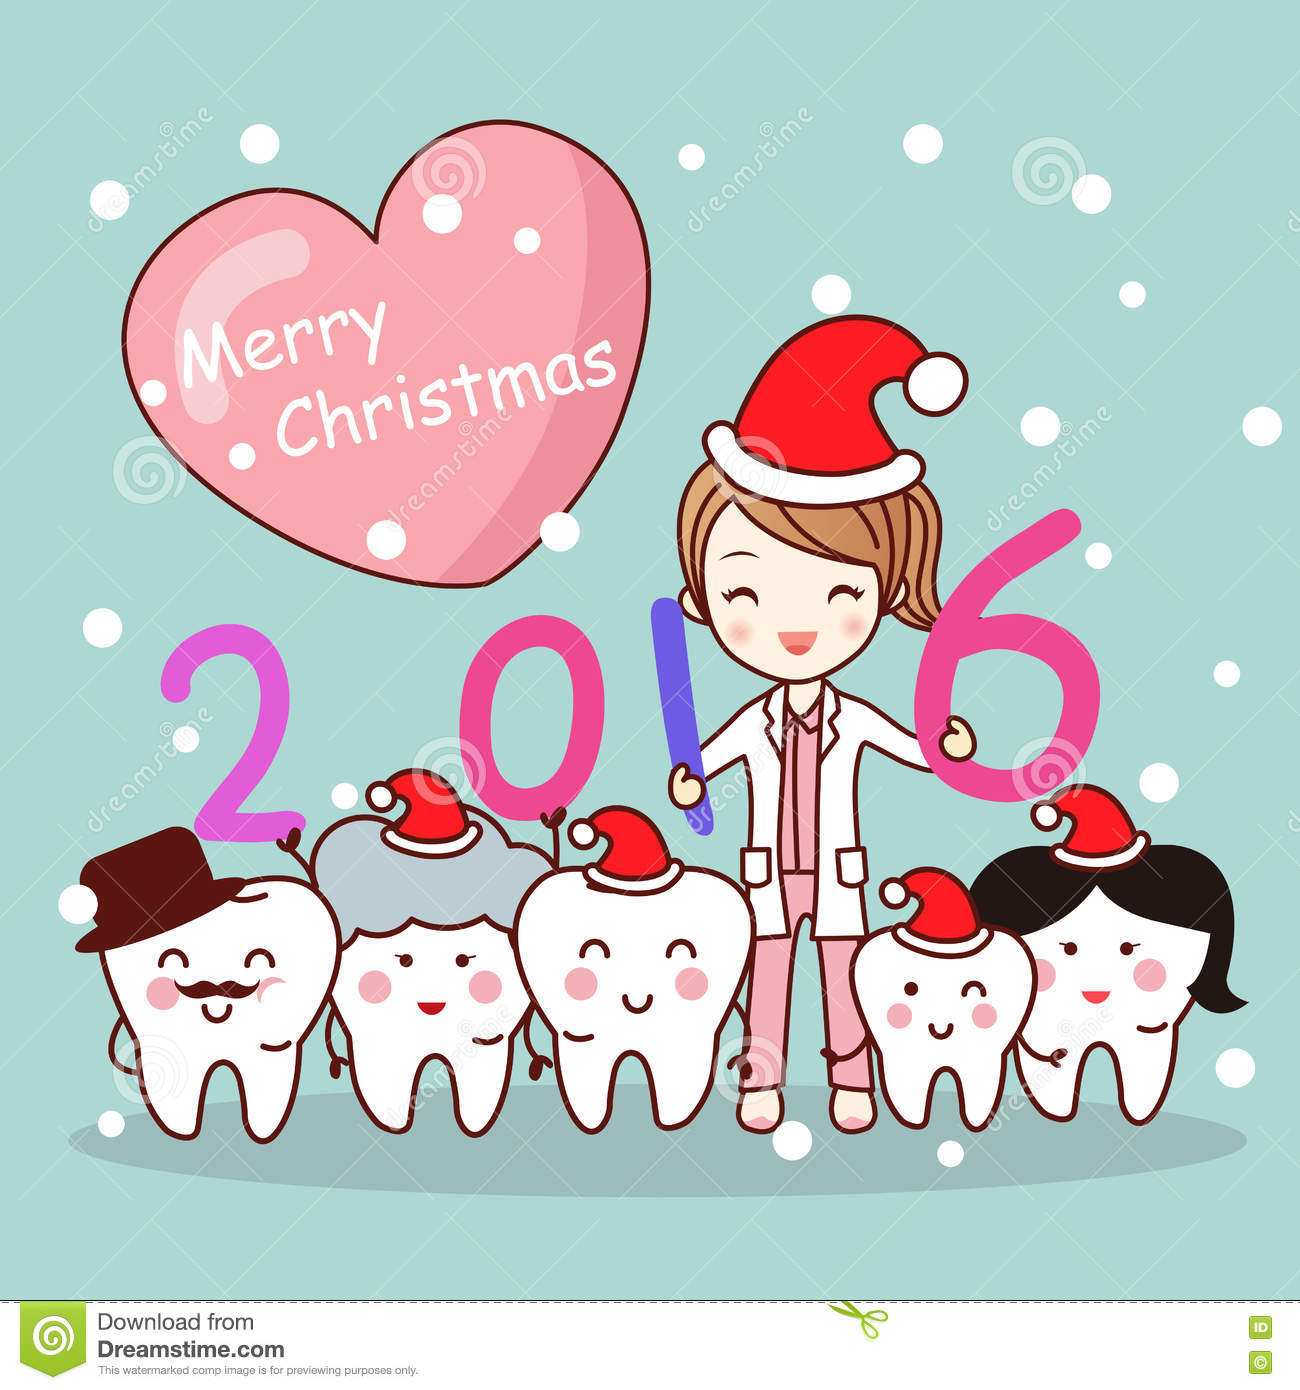 Christmas Dentist With Tooth Family Stock Vector - Image: 79169490